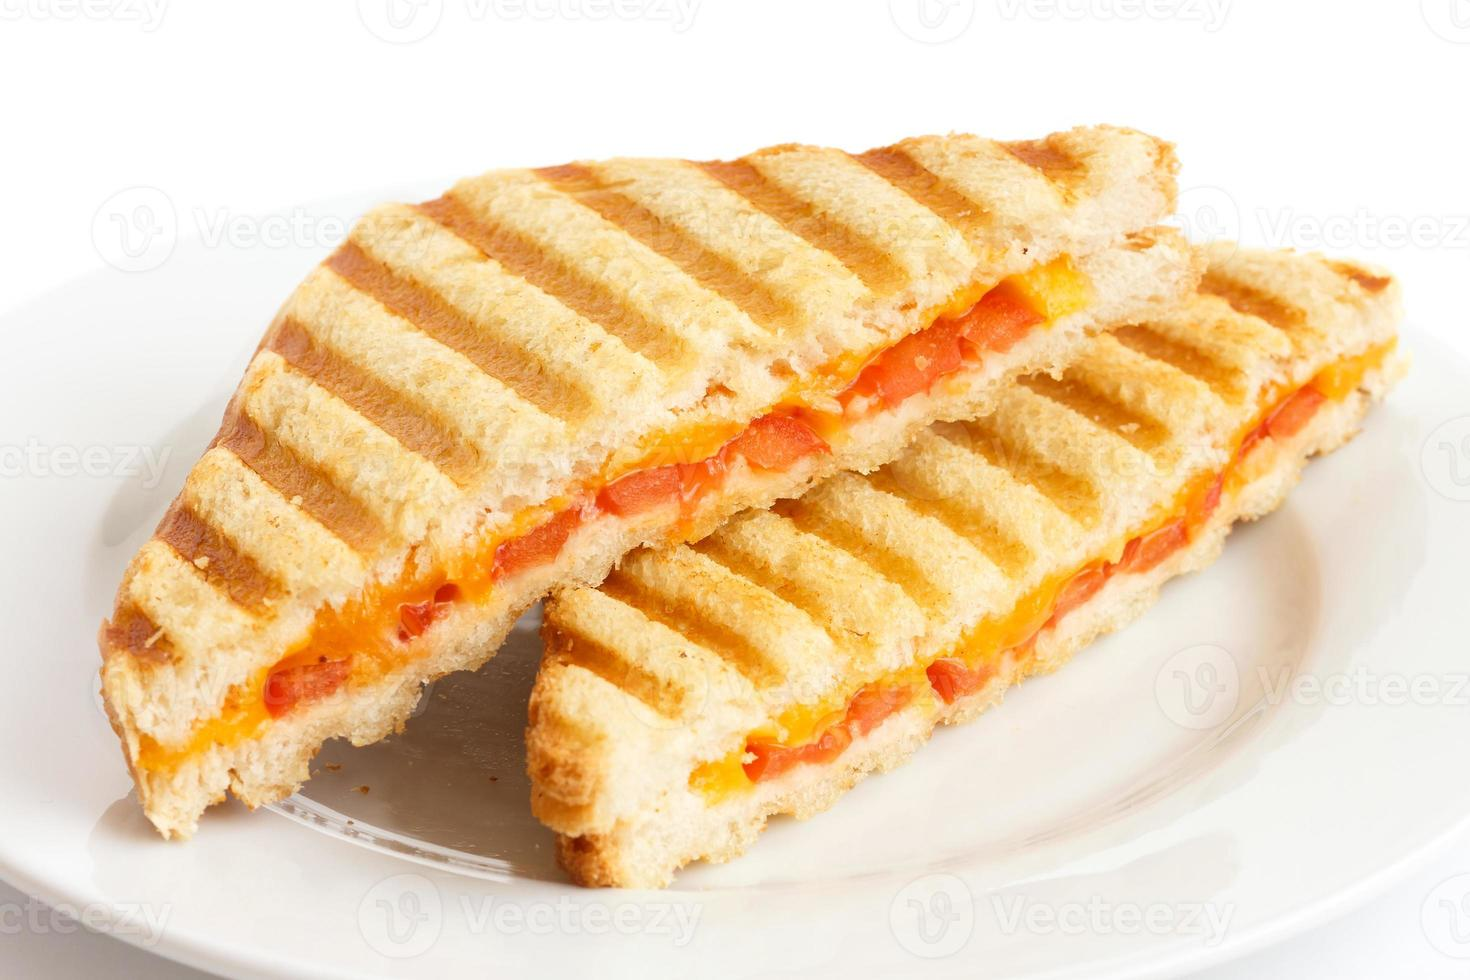 Classic tomato and cheese toasted sandwich on white plate. photo